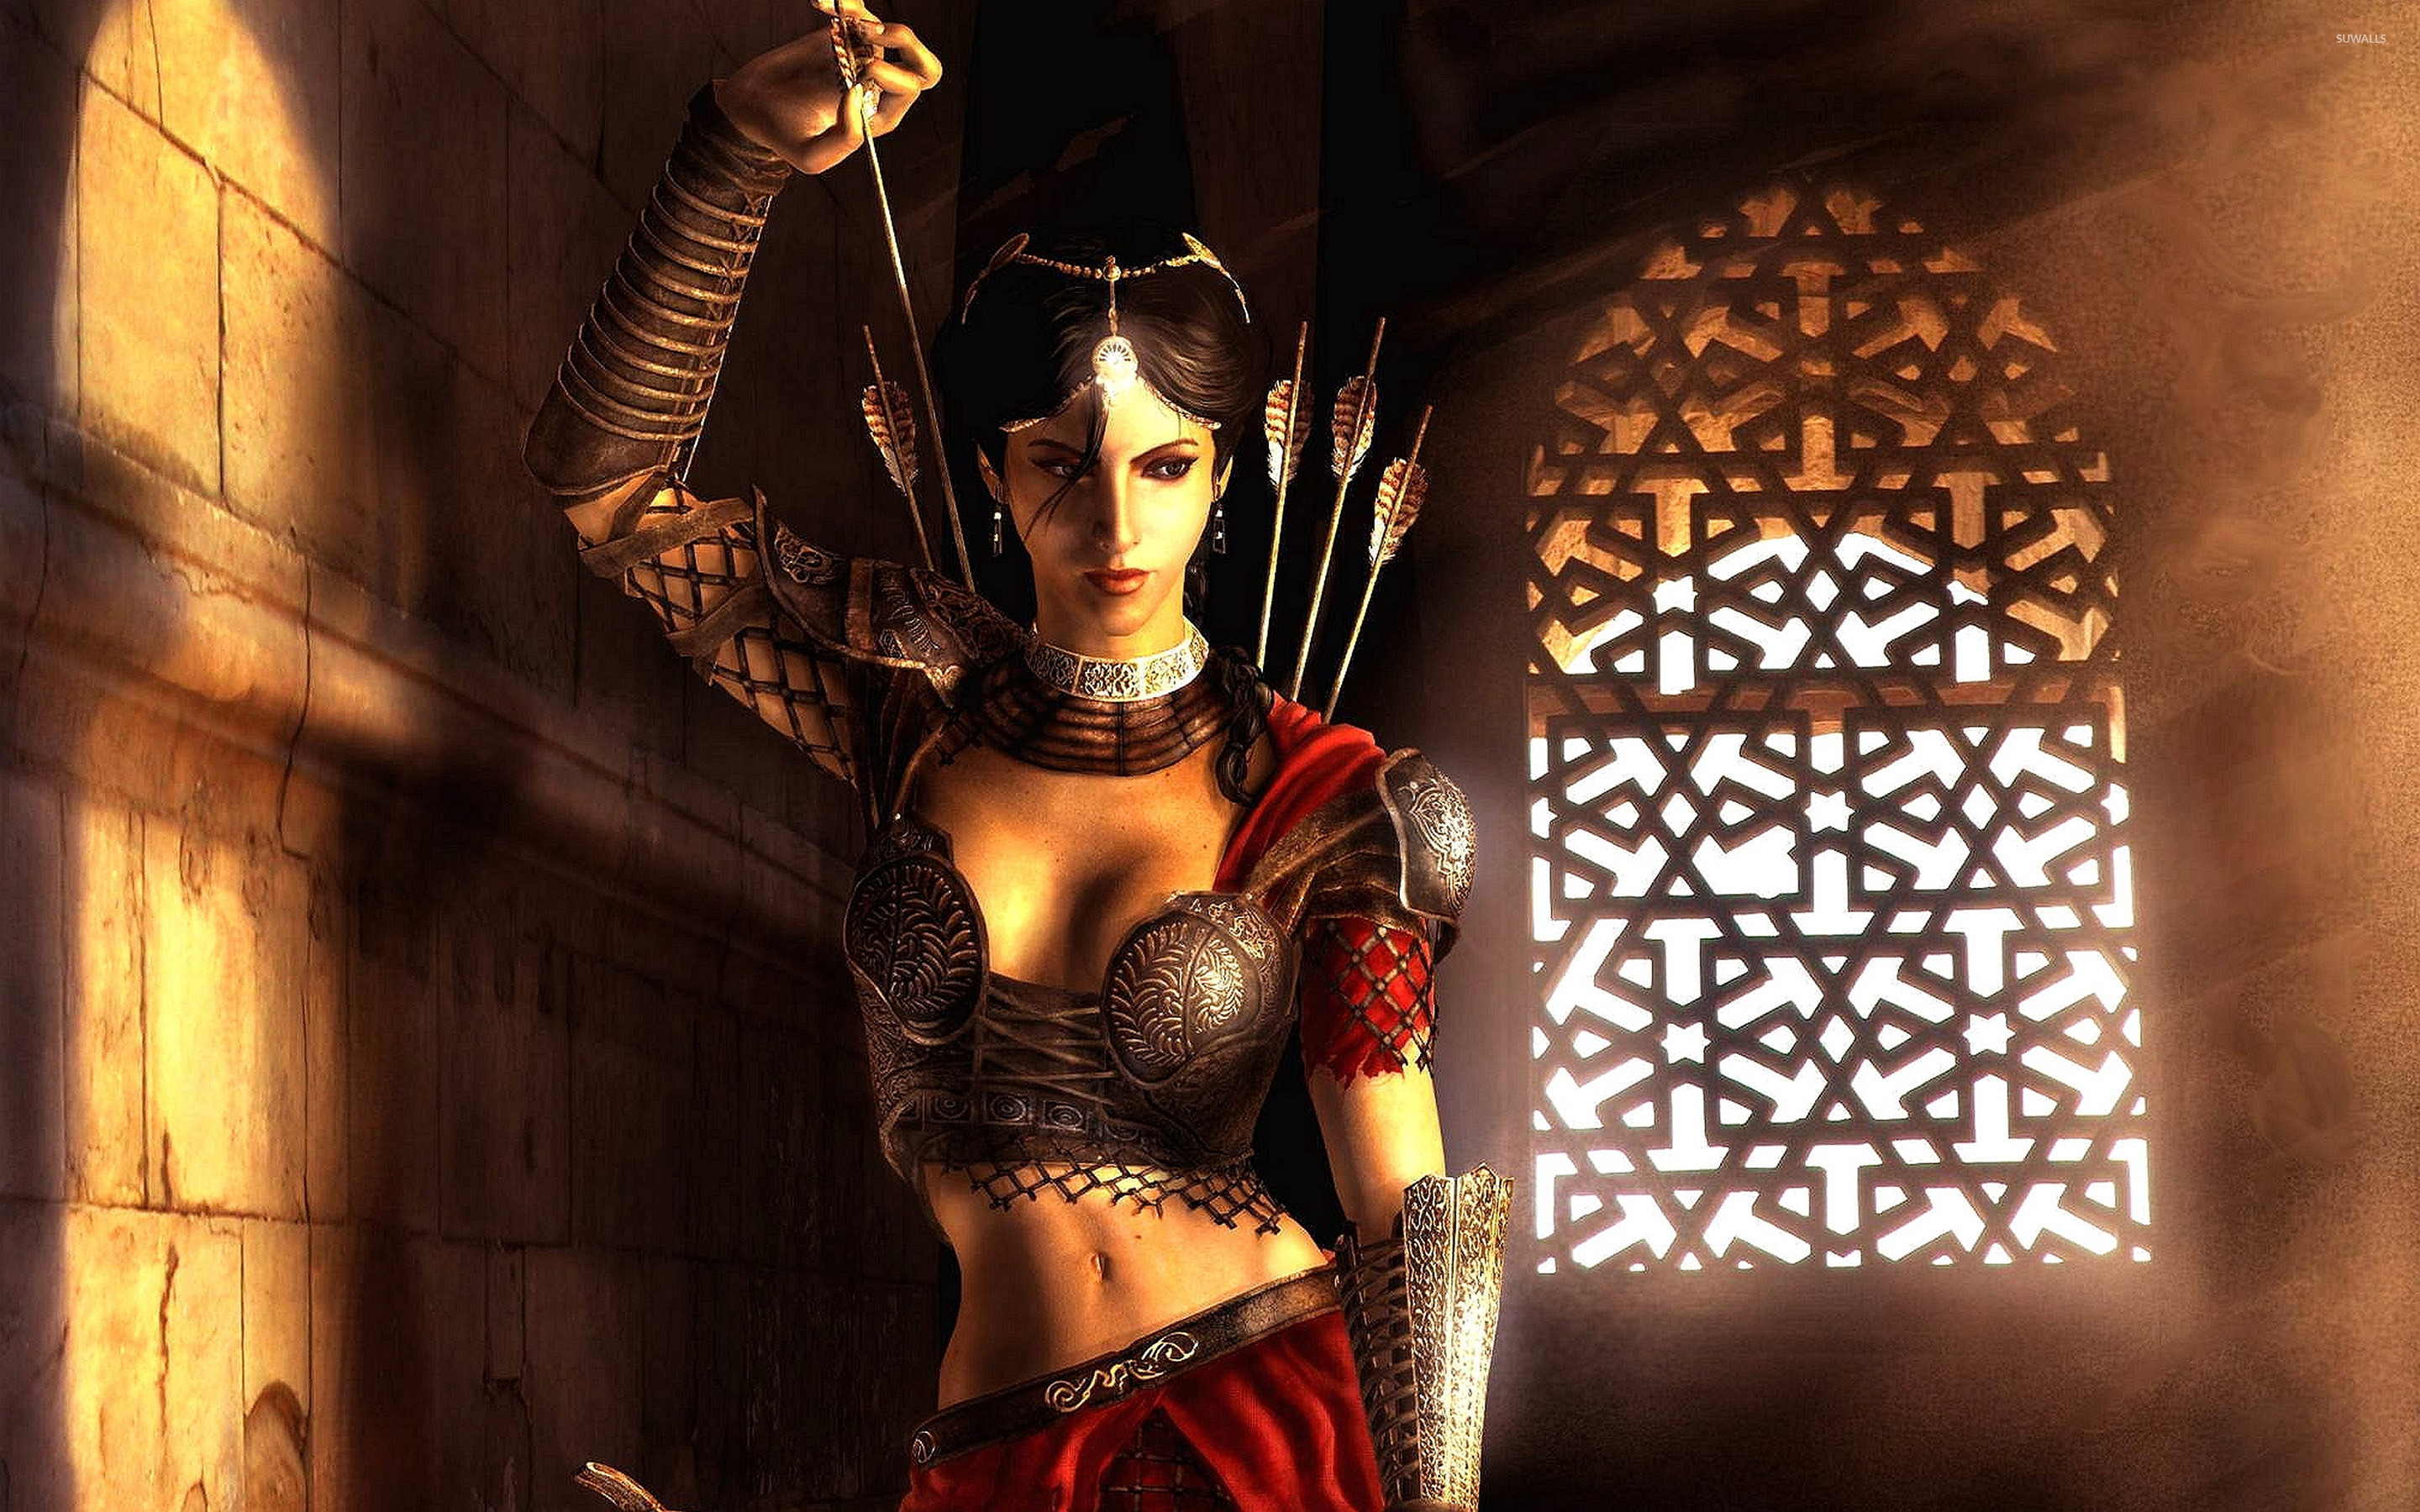 Prince Of Persia The Two Thrones Wallpaper ①